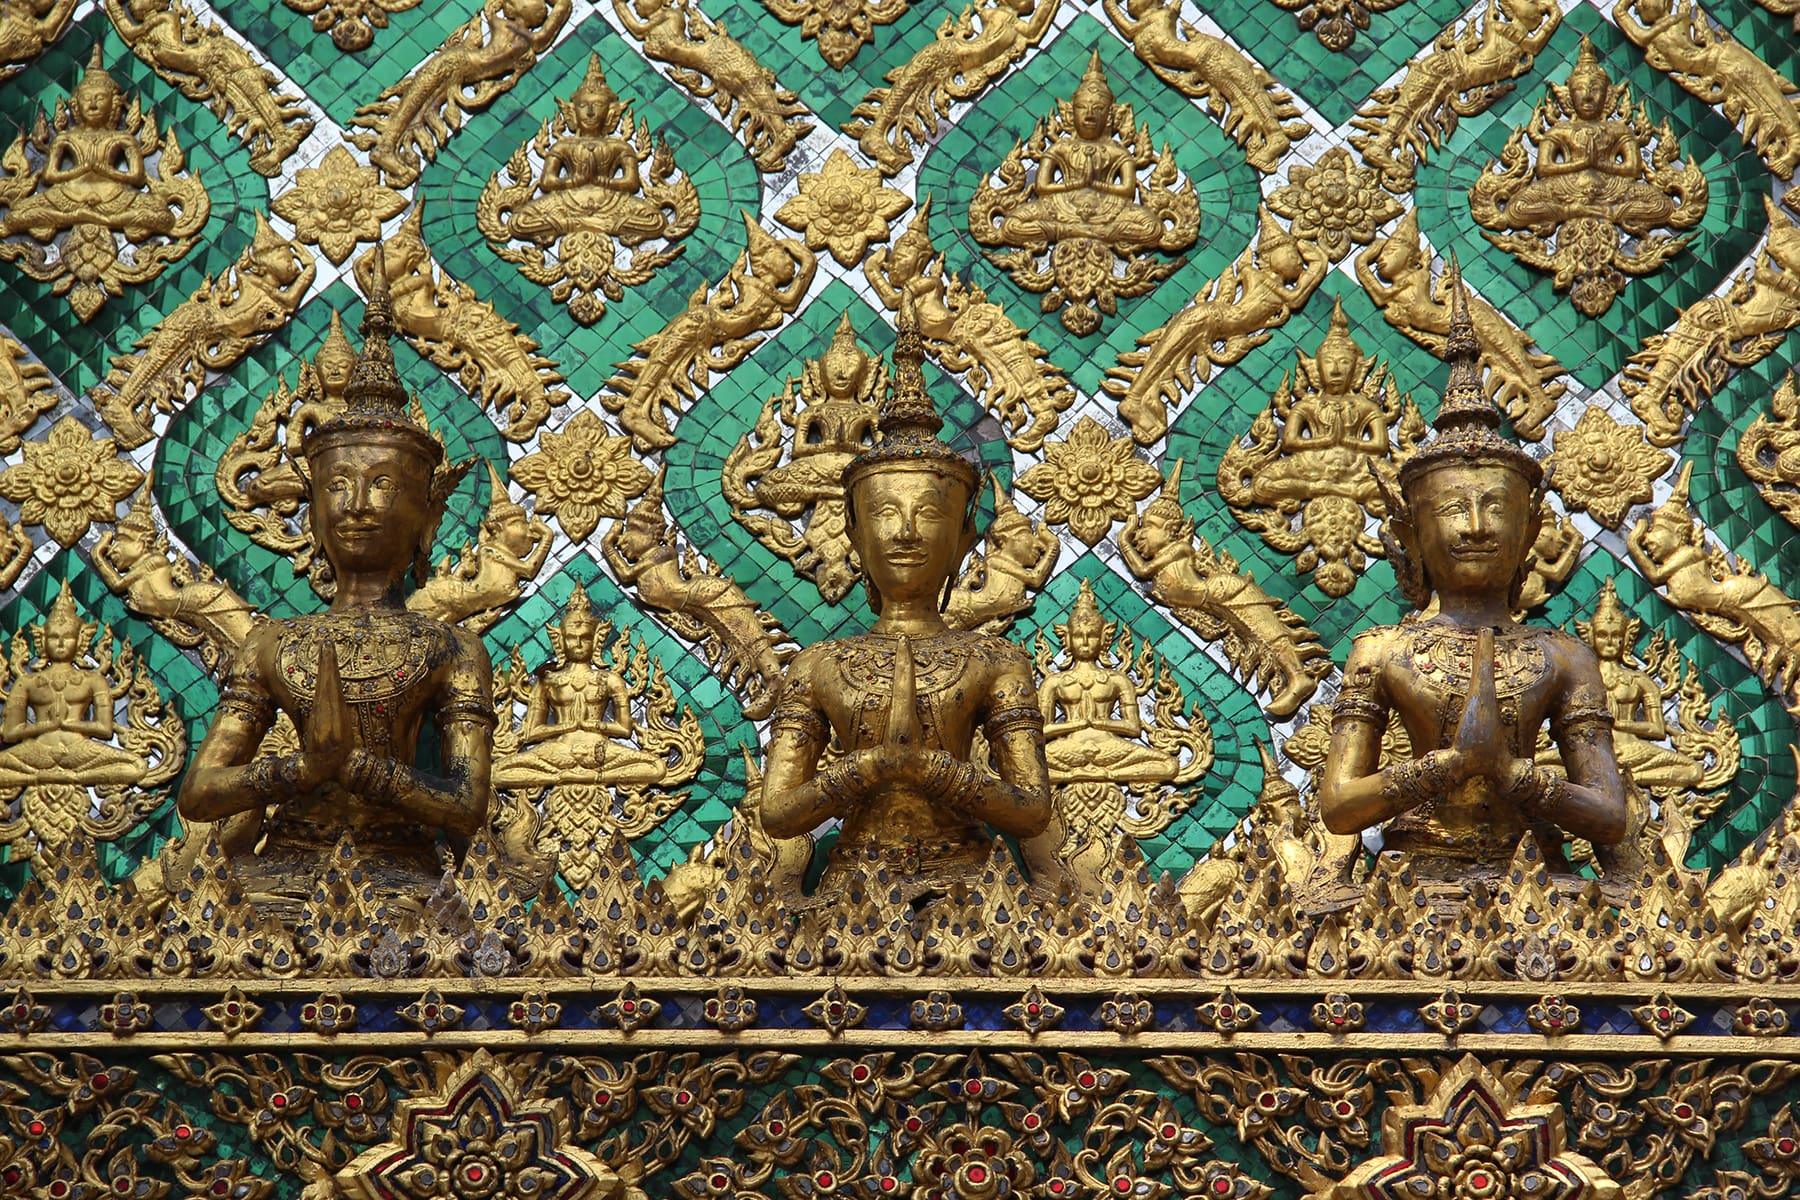 Praying figures as green gold decorations in Bangkok Grand Palace